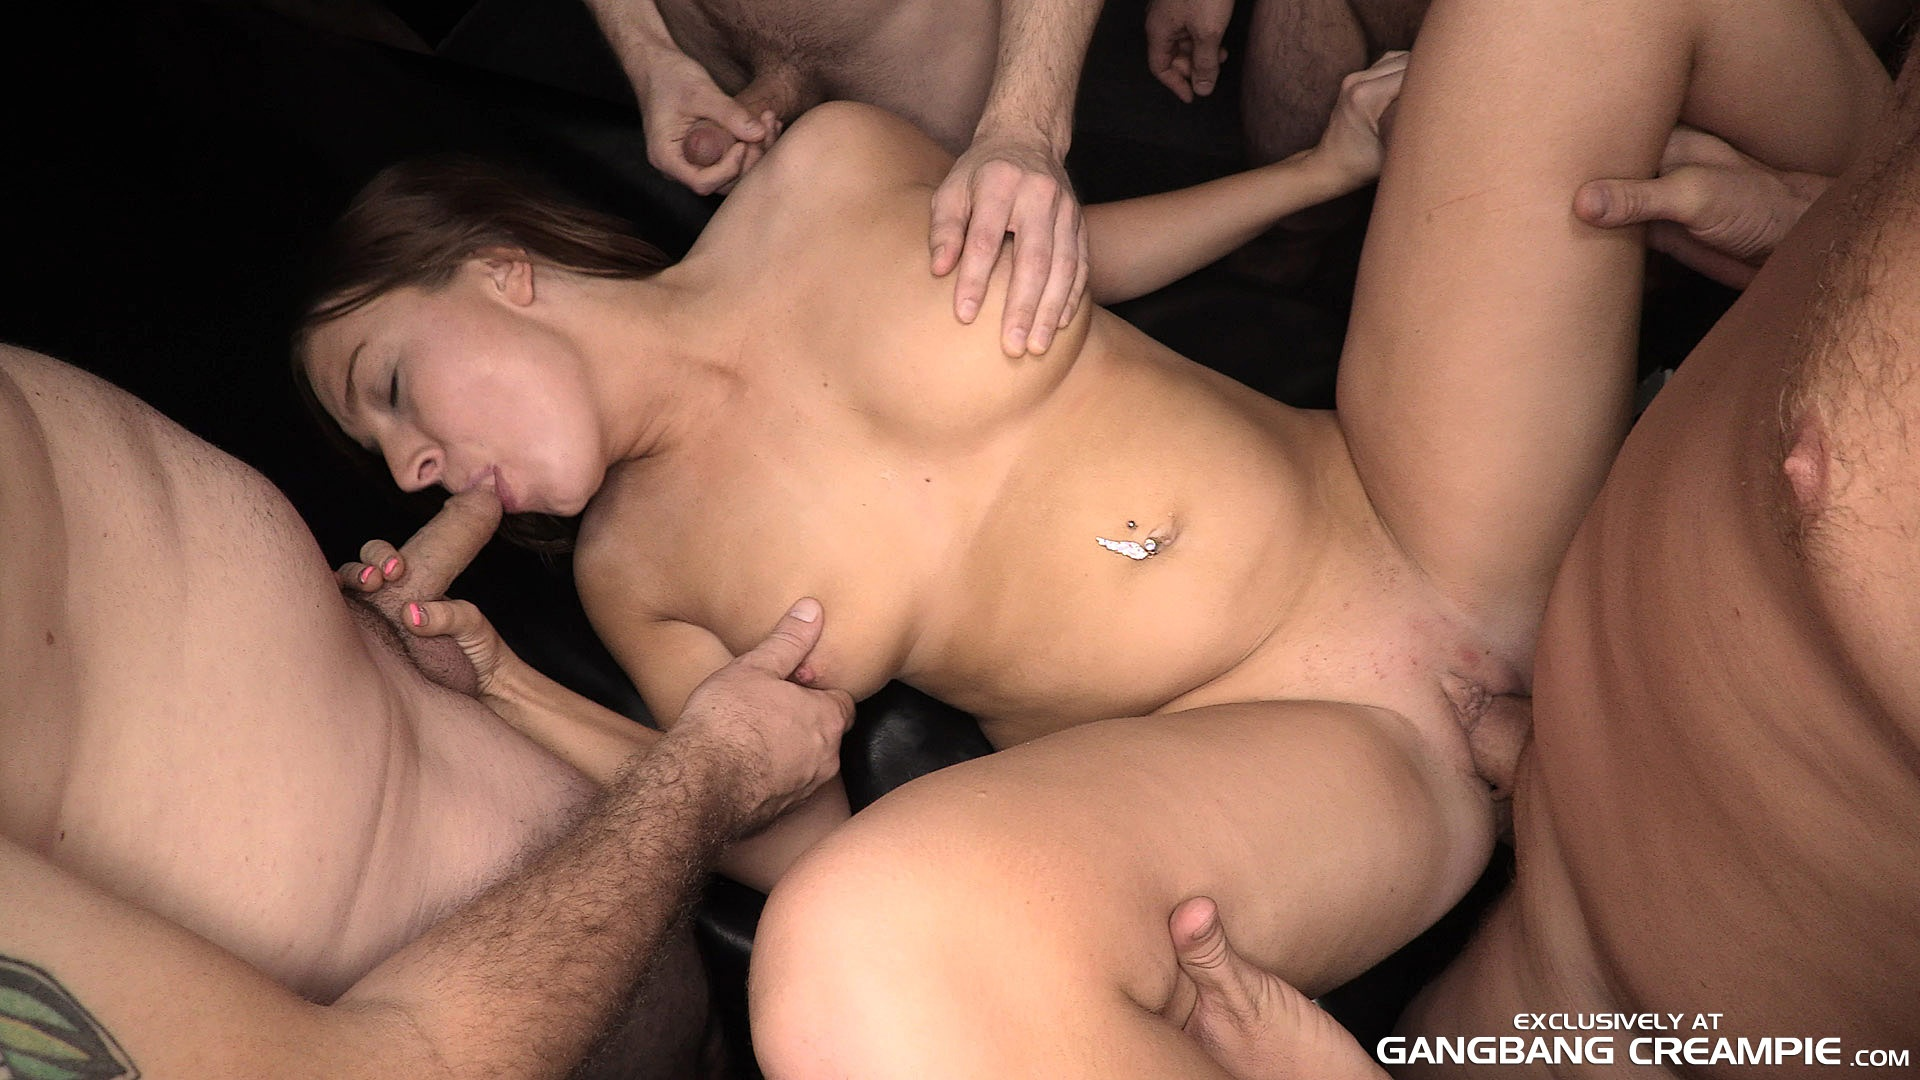 Extreme Multiple Amateur Wife Gangbang